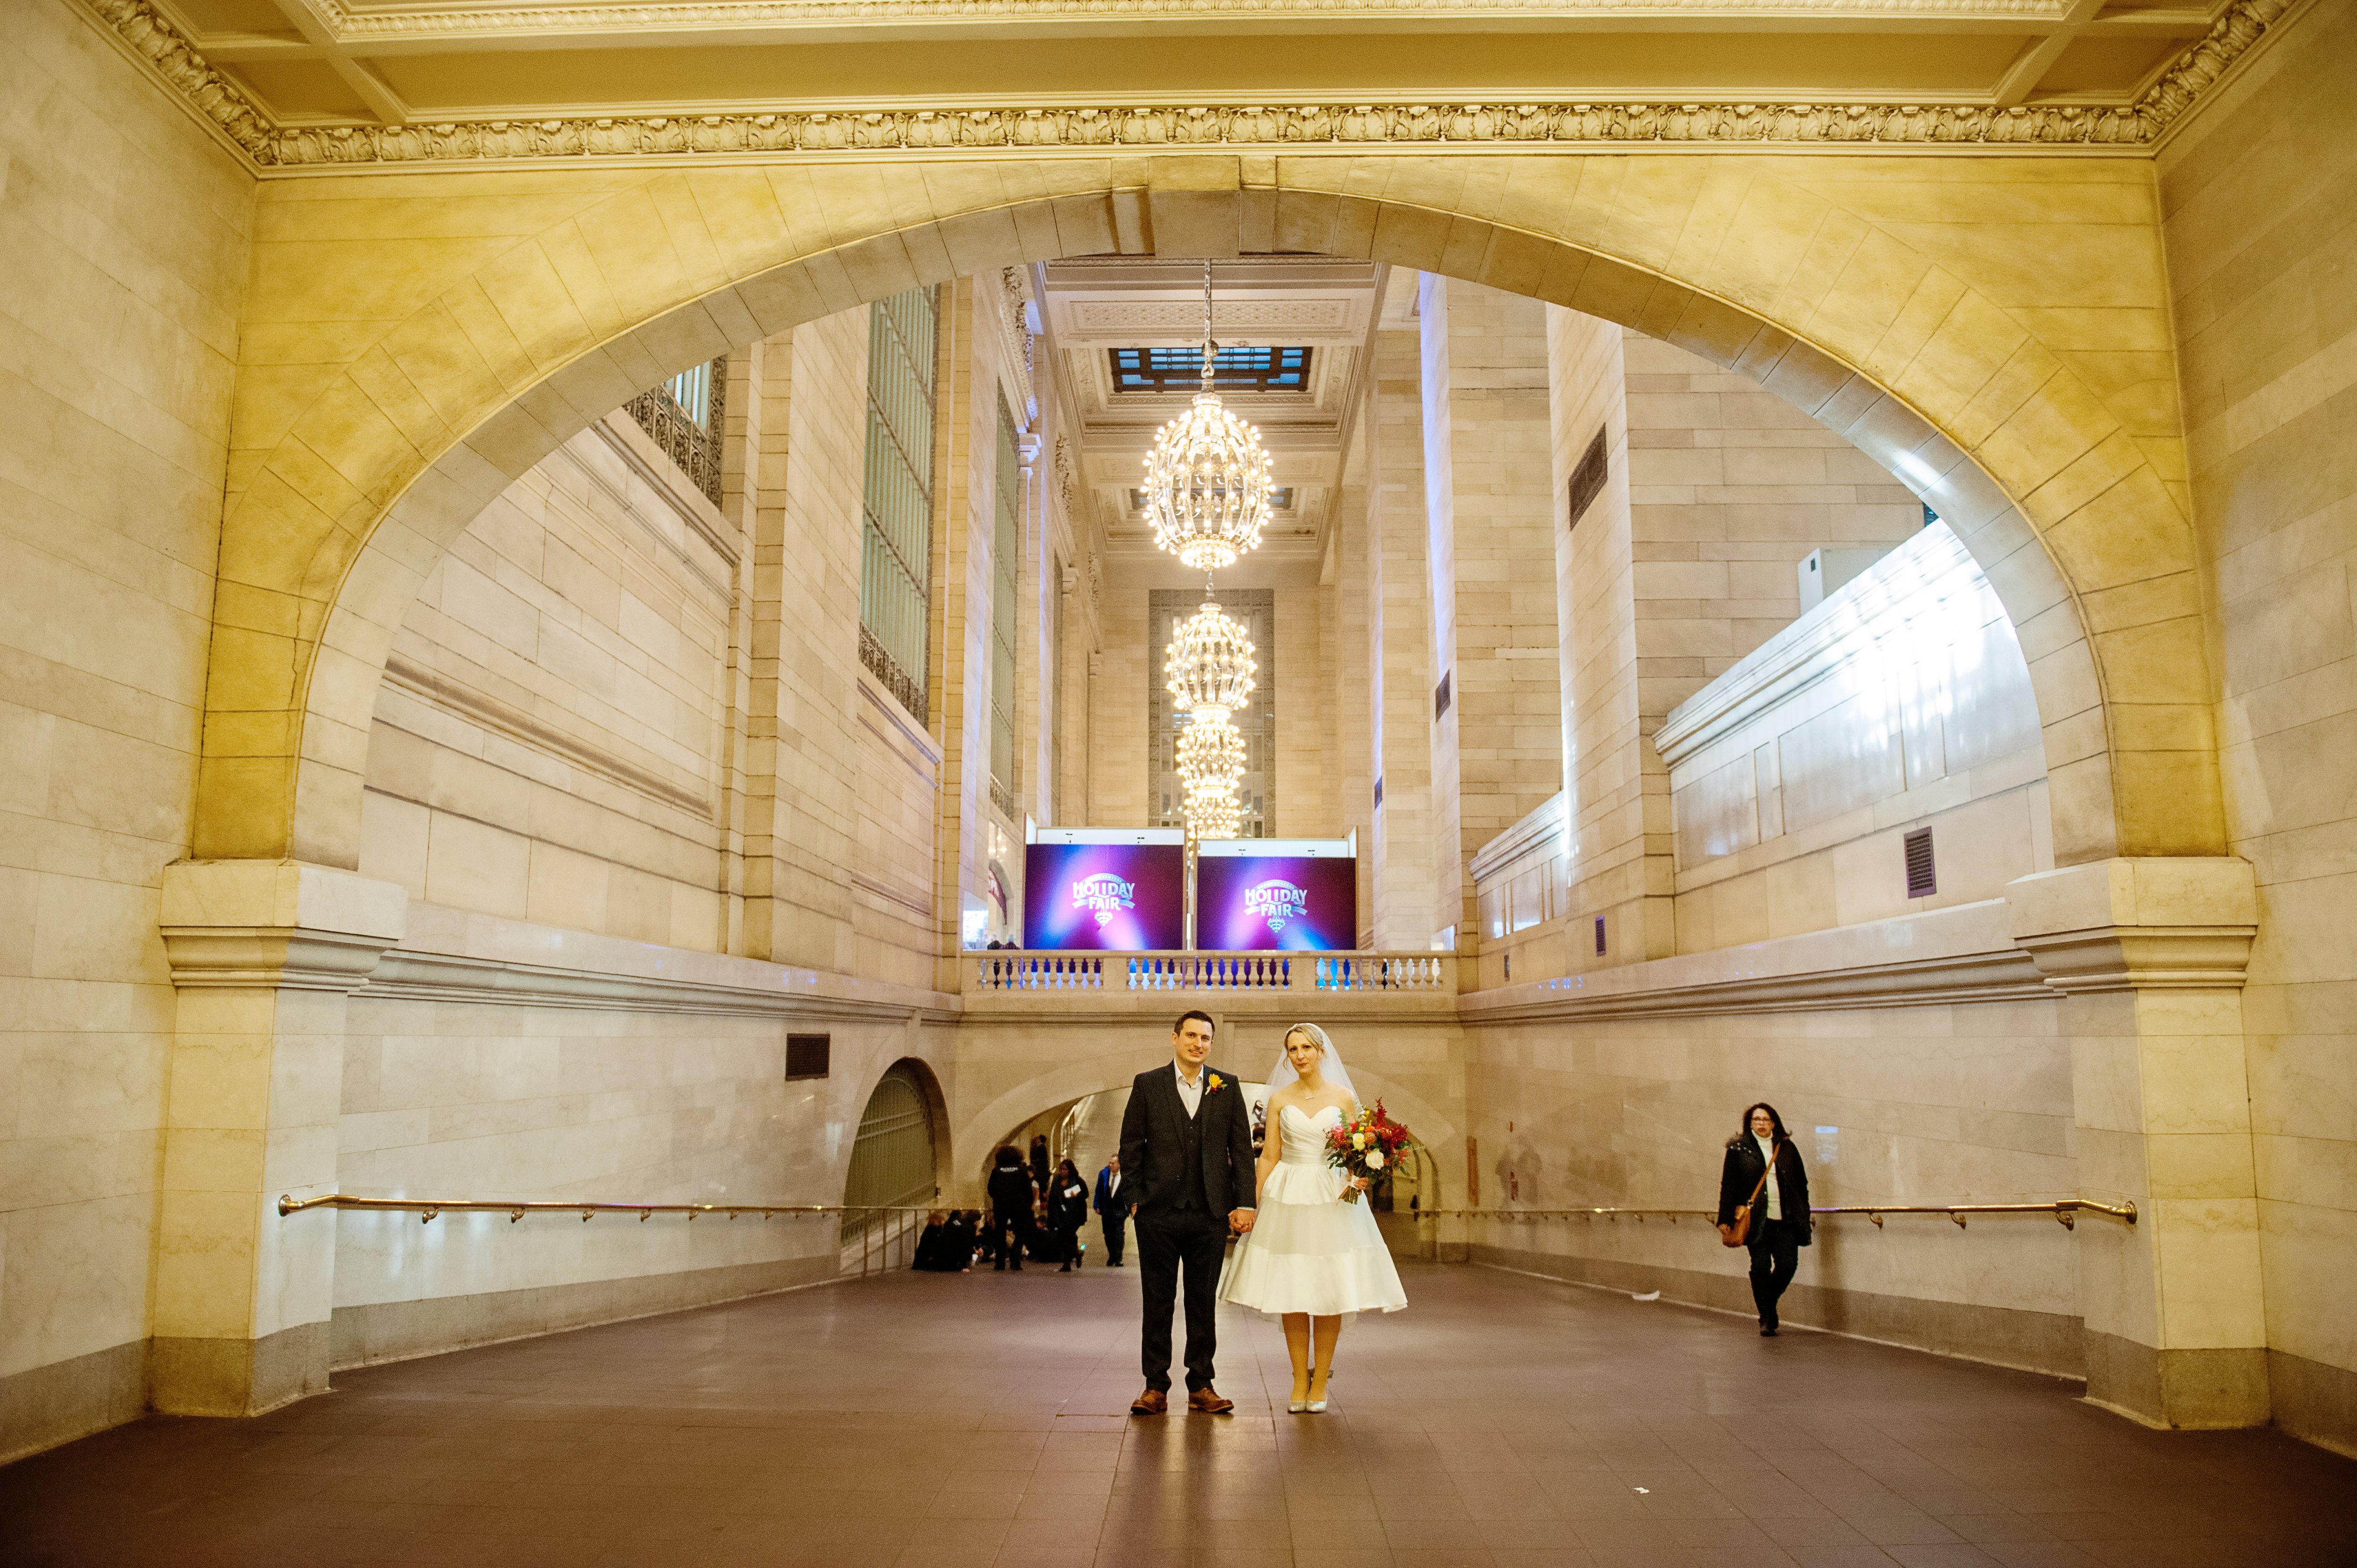 Grand Central Terminal should definitely be on your list of 5 things you MUST do in New York